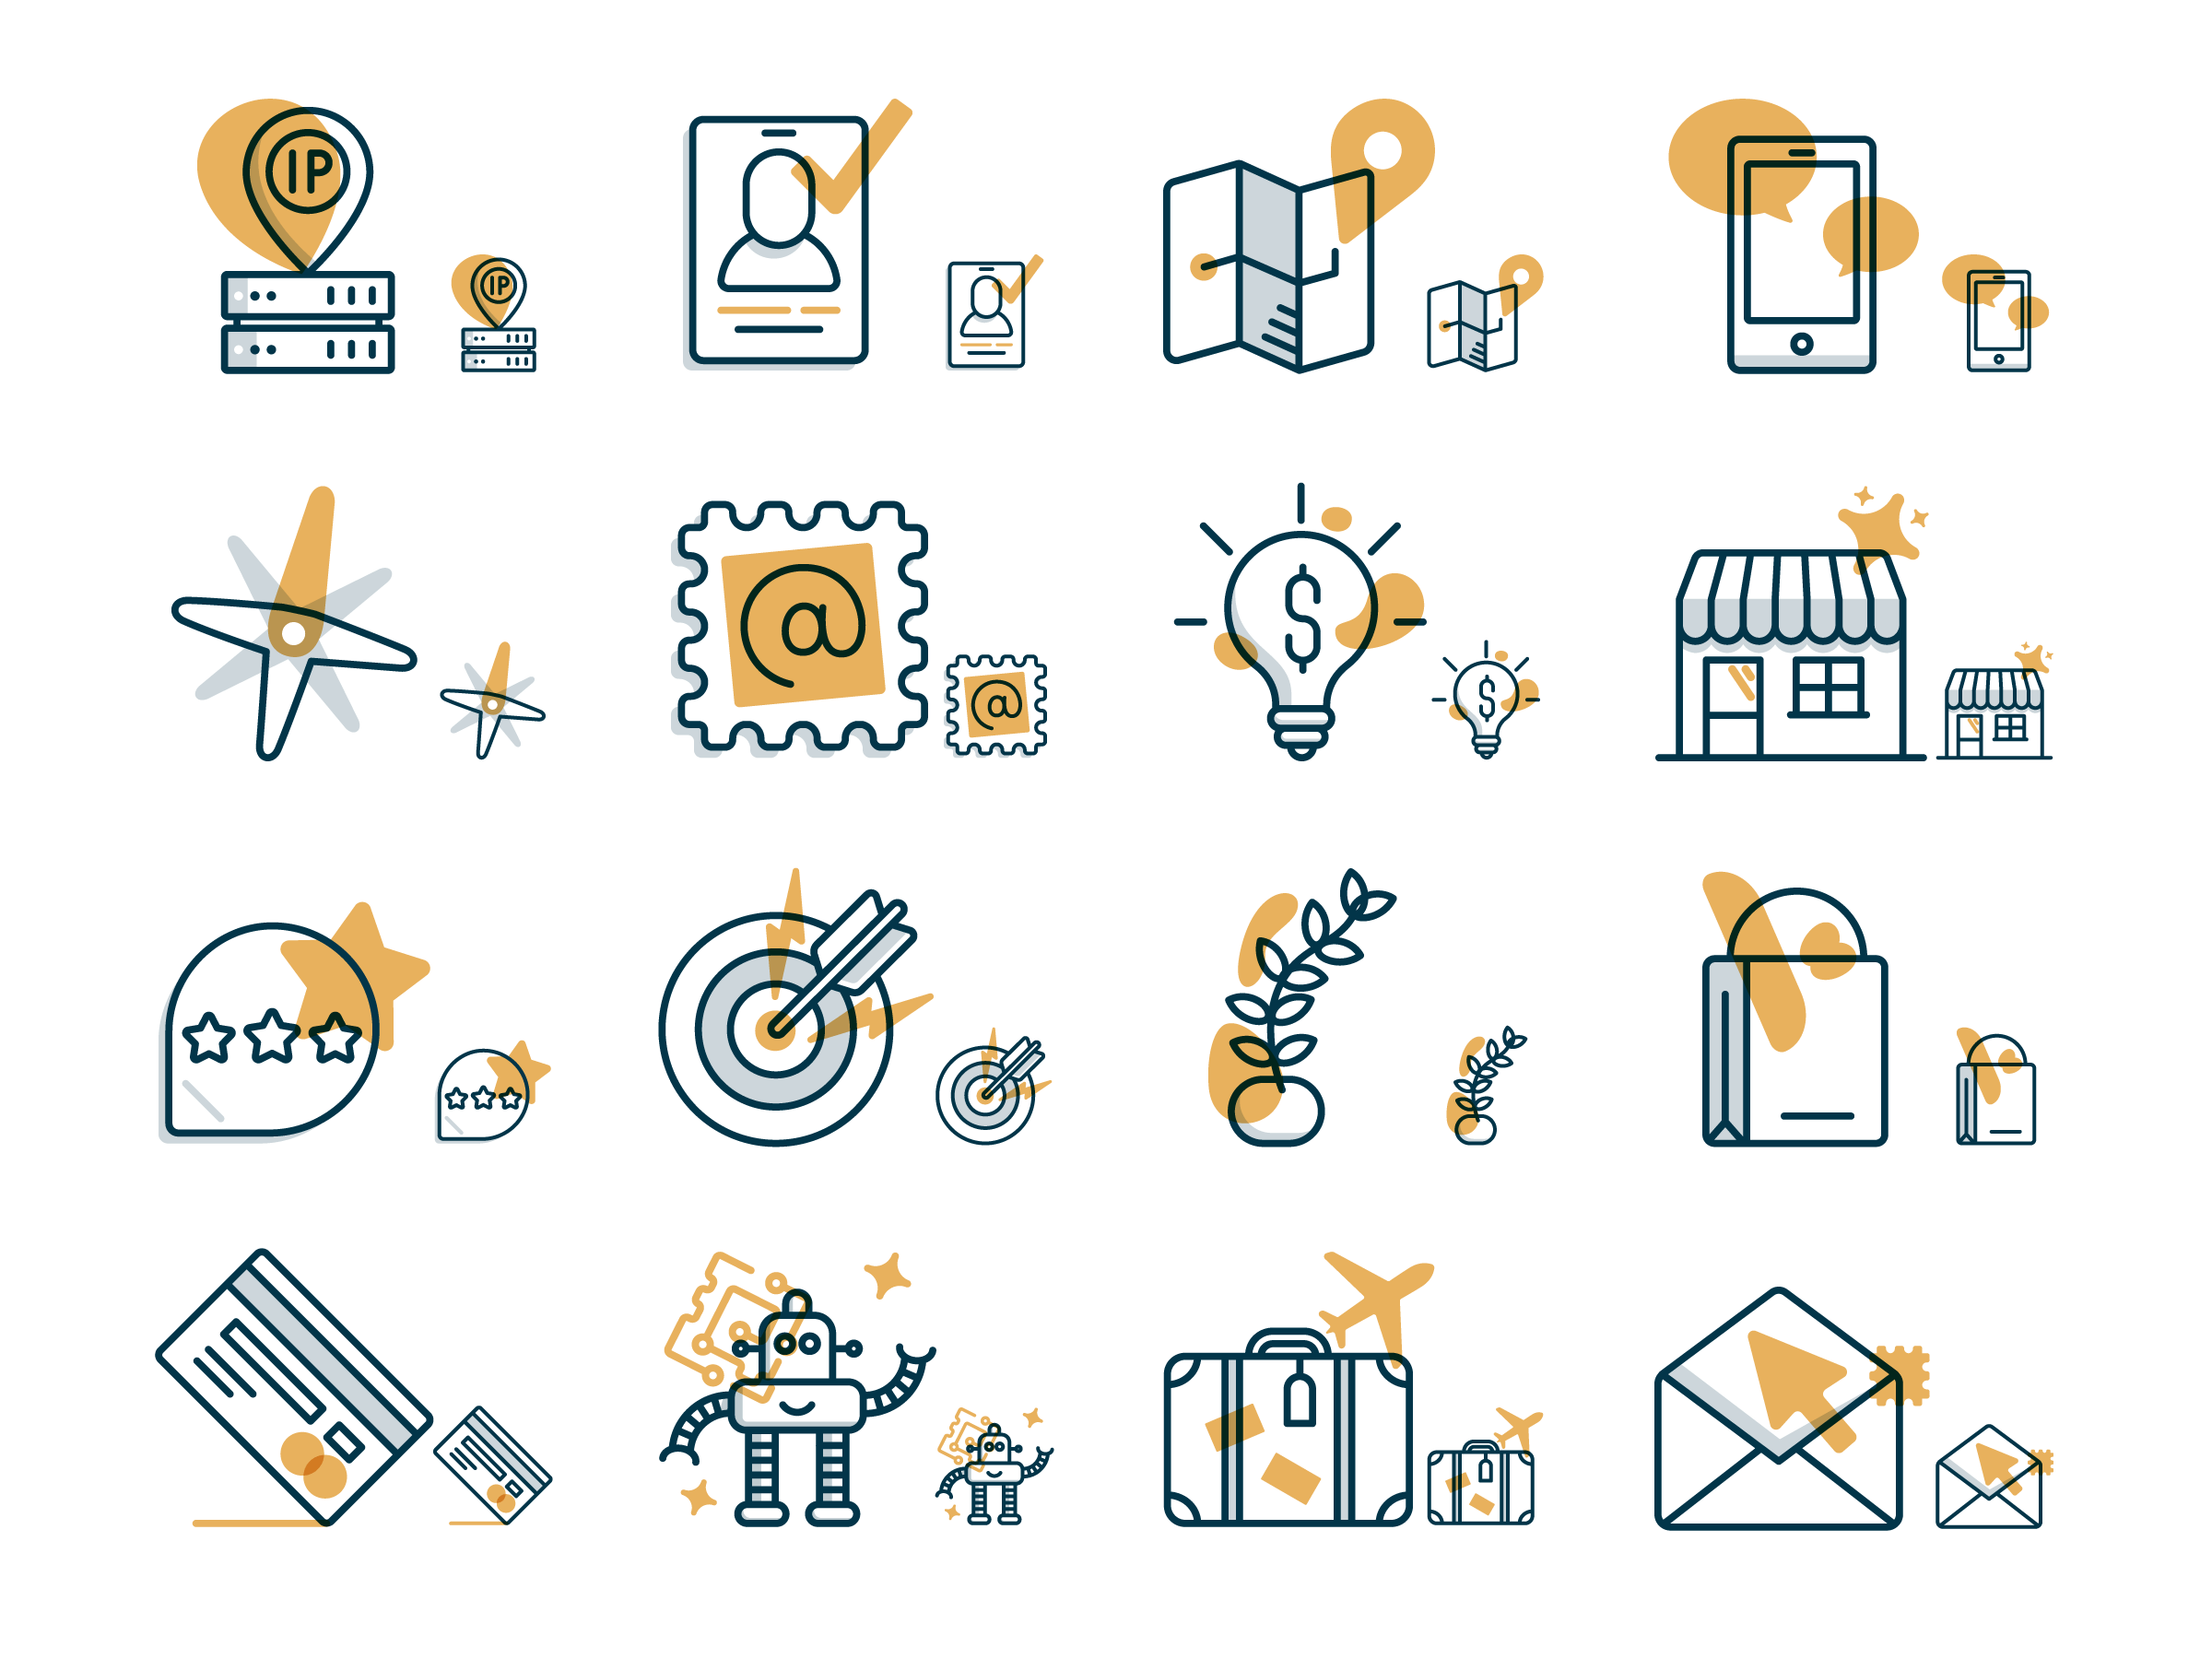 emailage-icons-lrg.png